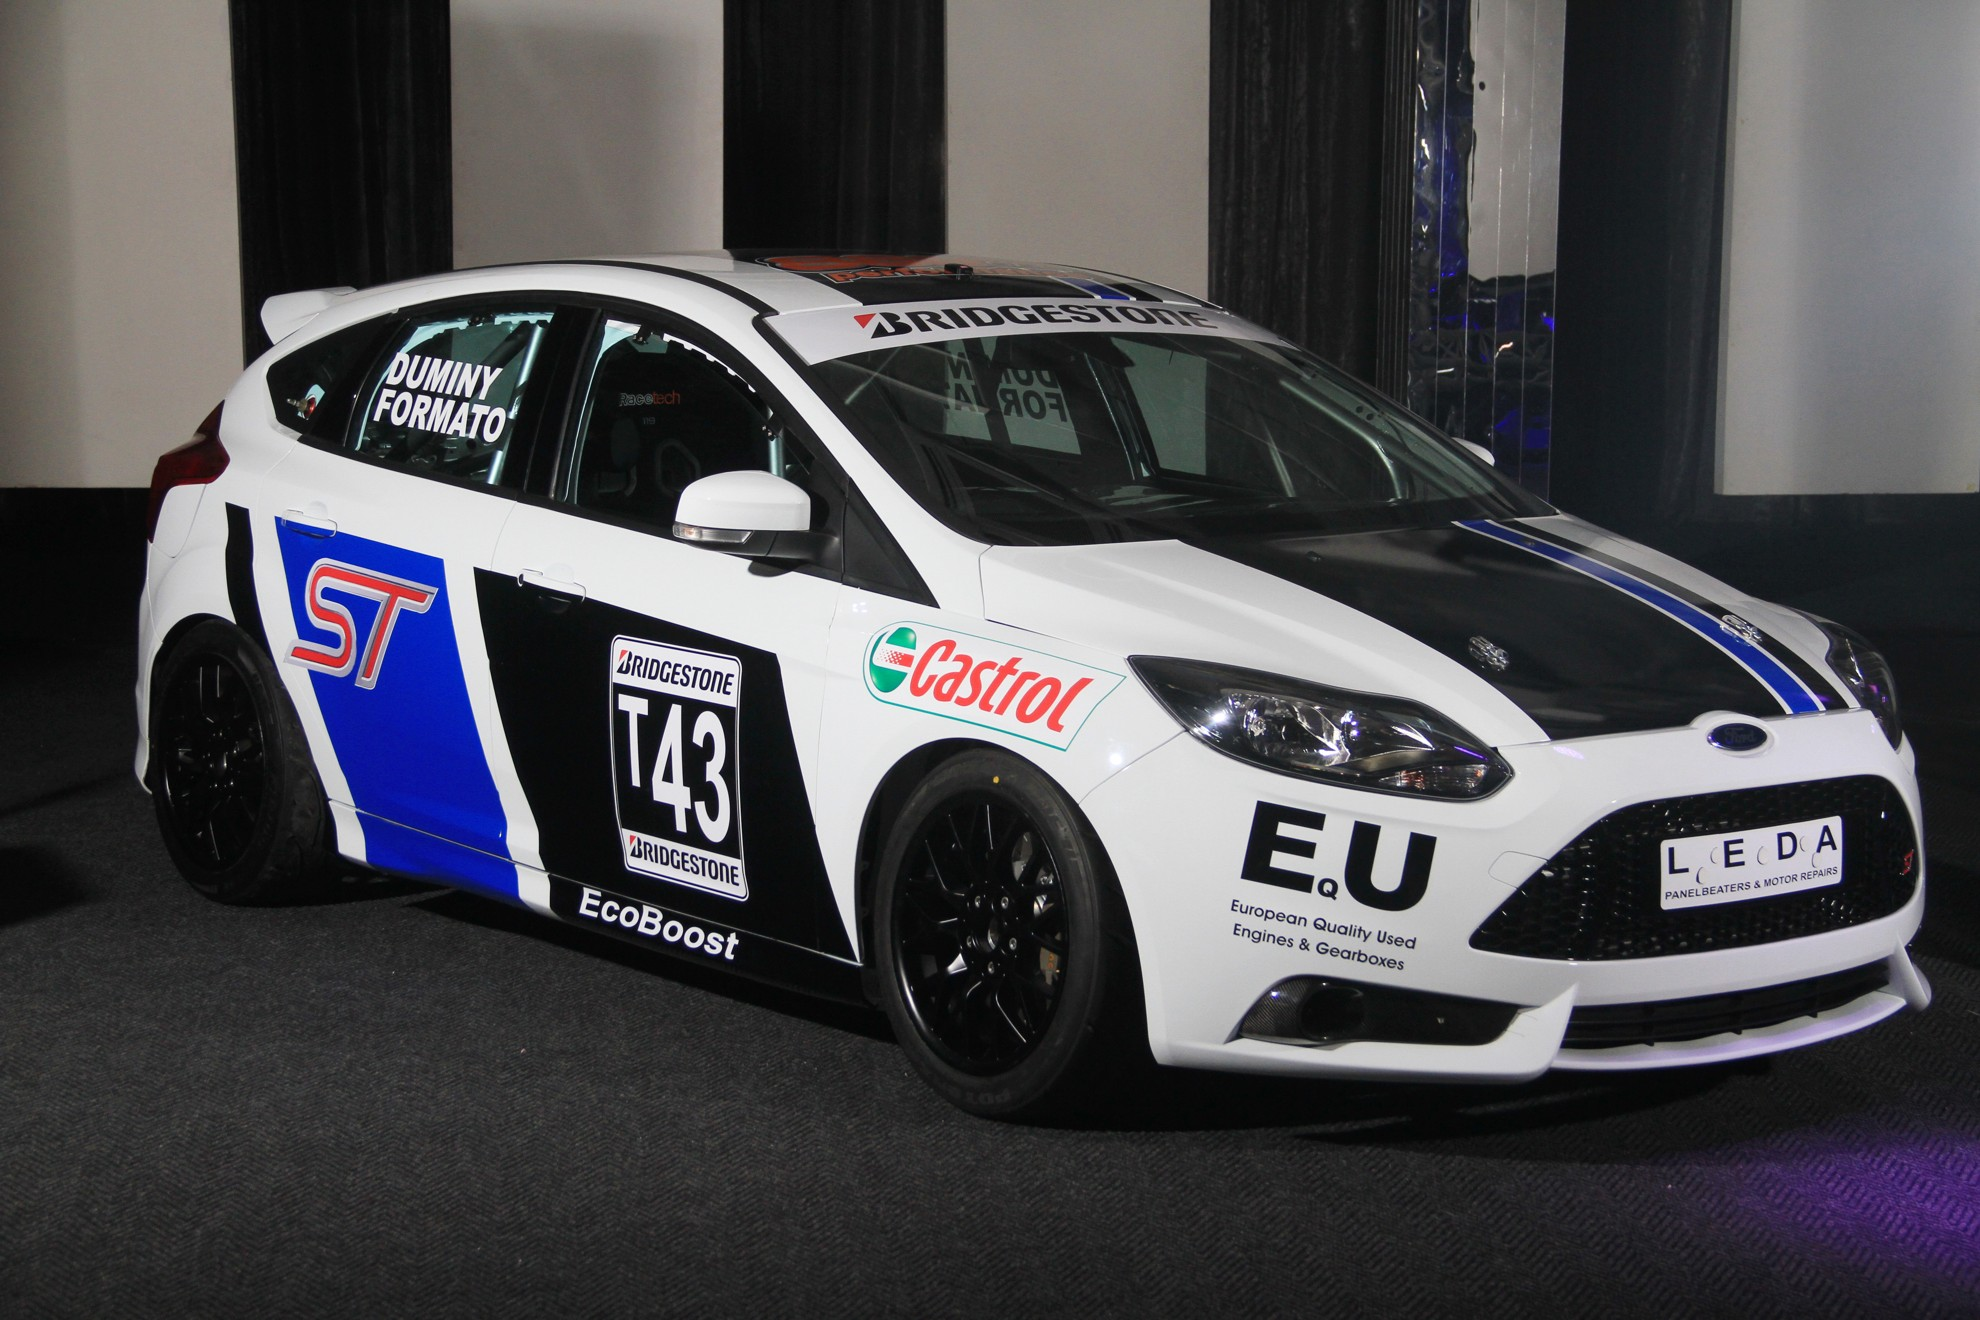 3d car shows ford south africa motorsport and racing 2013 for Ford motor company truck division